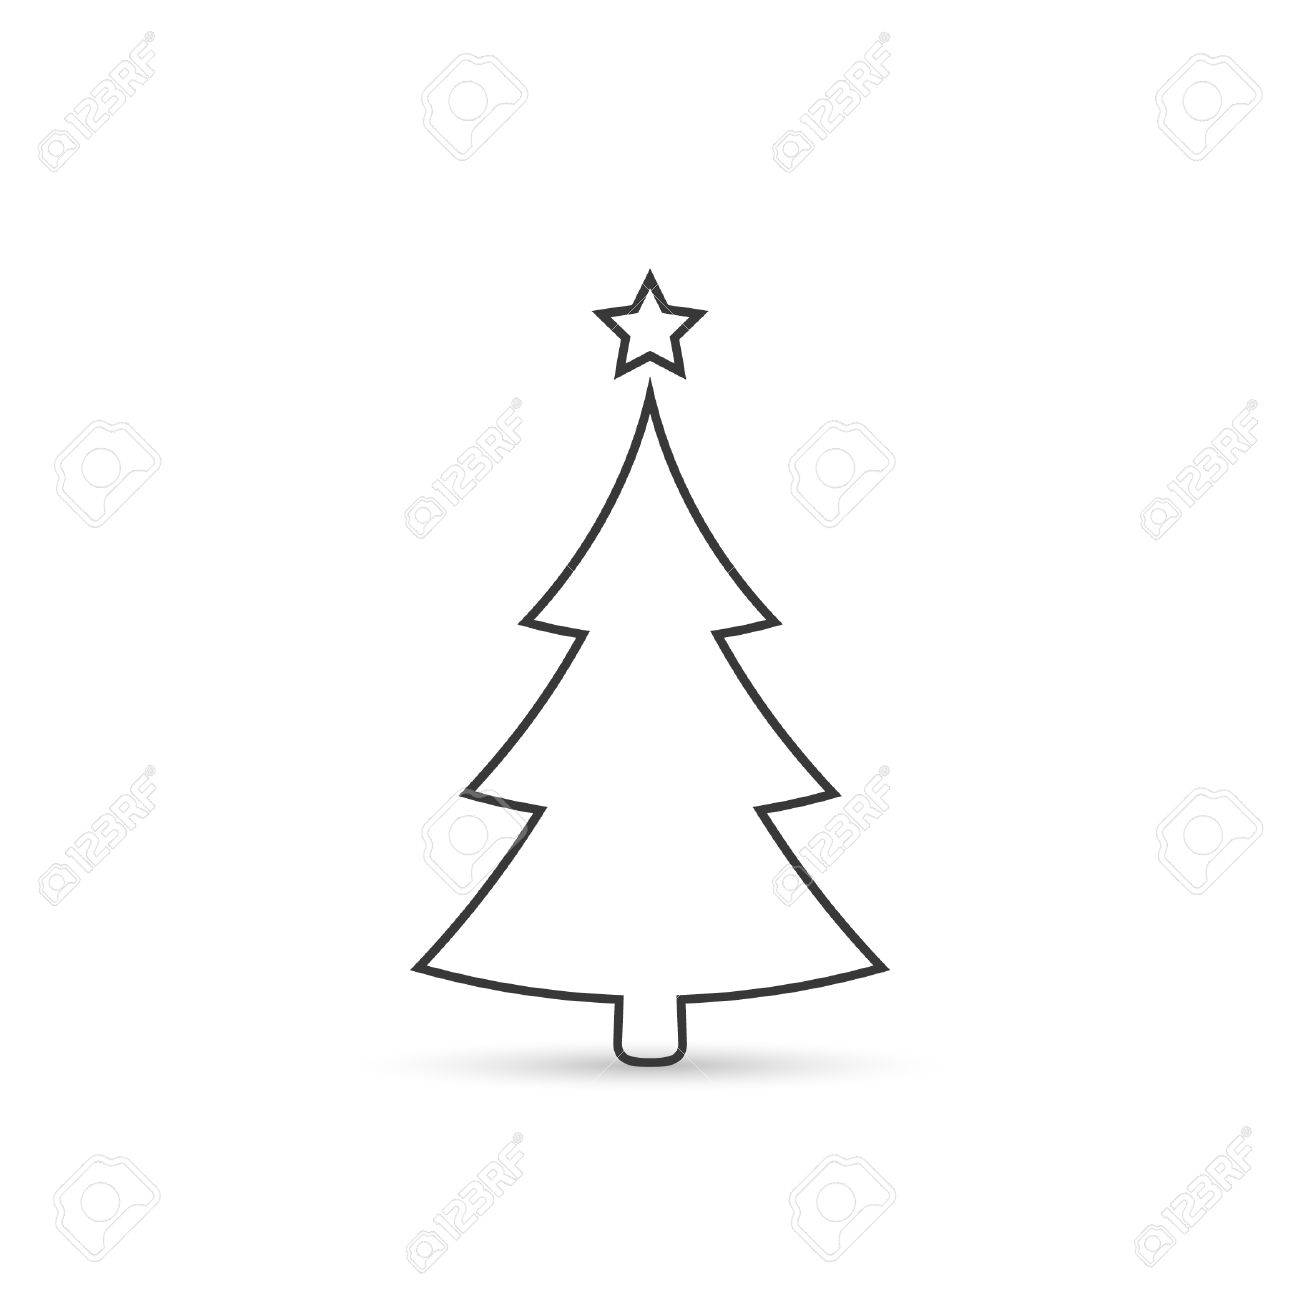 Christmas Tree Icon.Christmas Tree Outline Icon Vector Simple Design Black Symbol